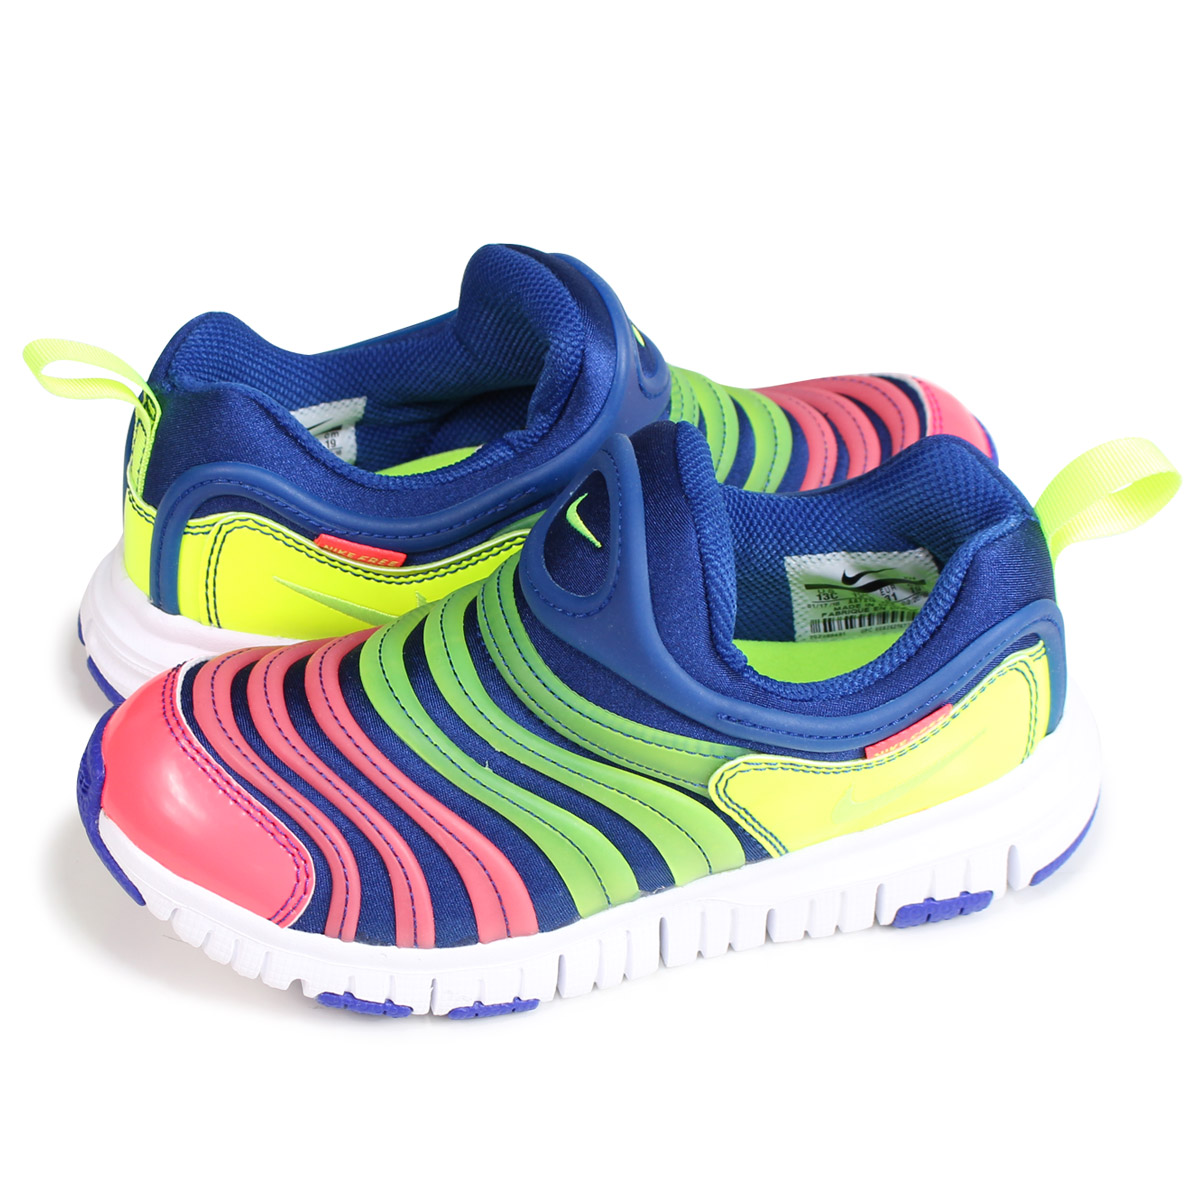 719d9991cfc4 NIKE DYNAMO FREE SE PS Nike dynamo-free kids sneakers AA7216-400 blue  load  planned Shinnyu load in reservation product 7 20 containing